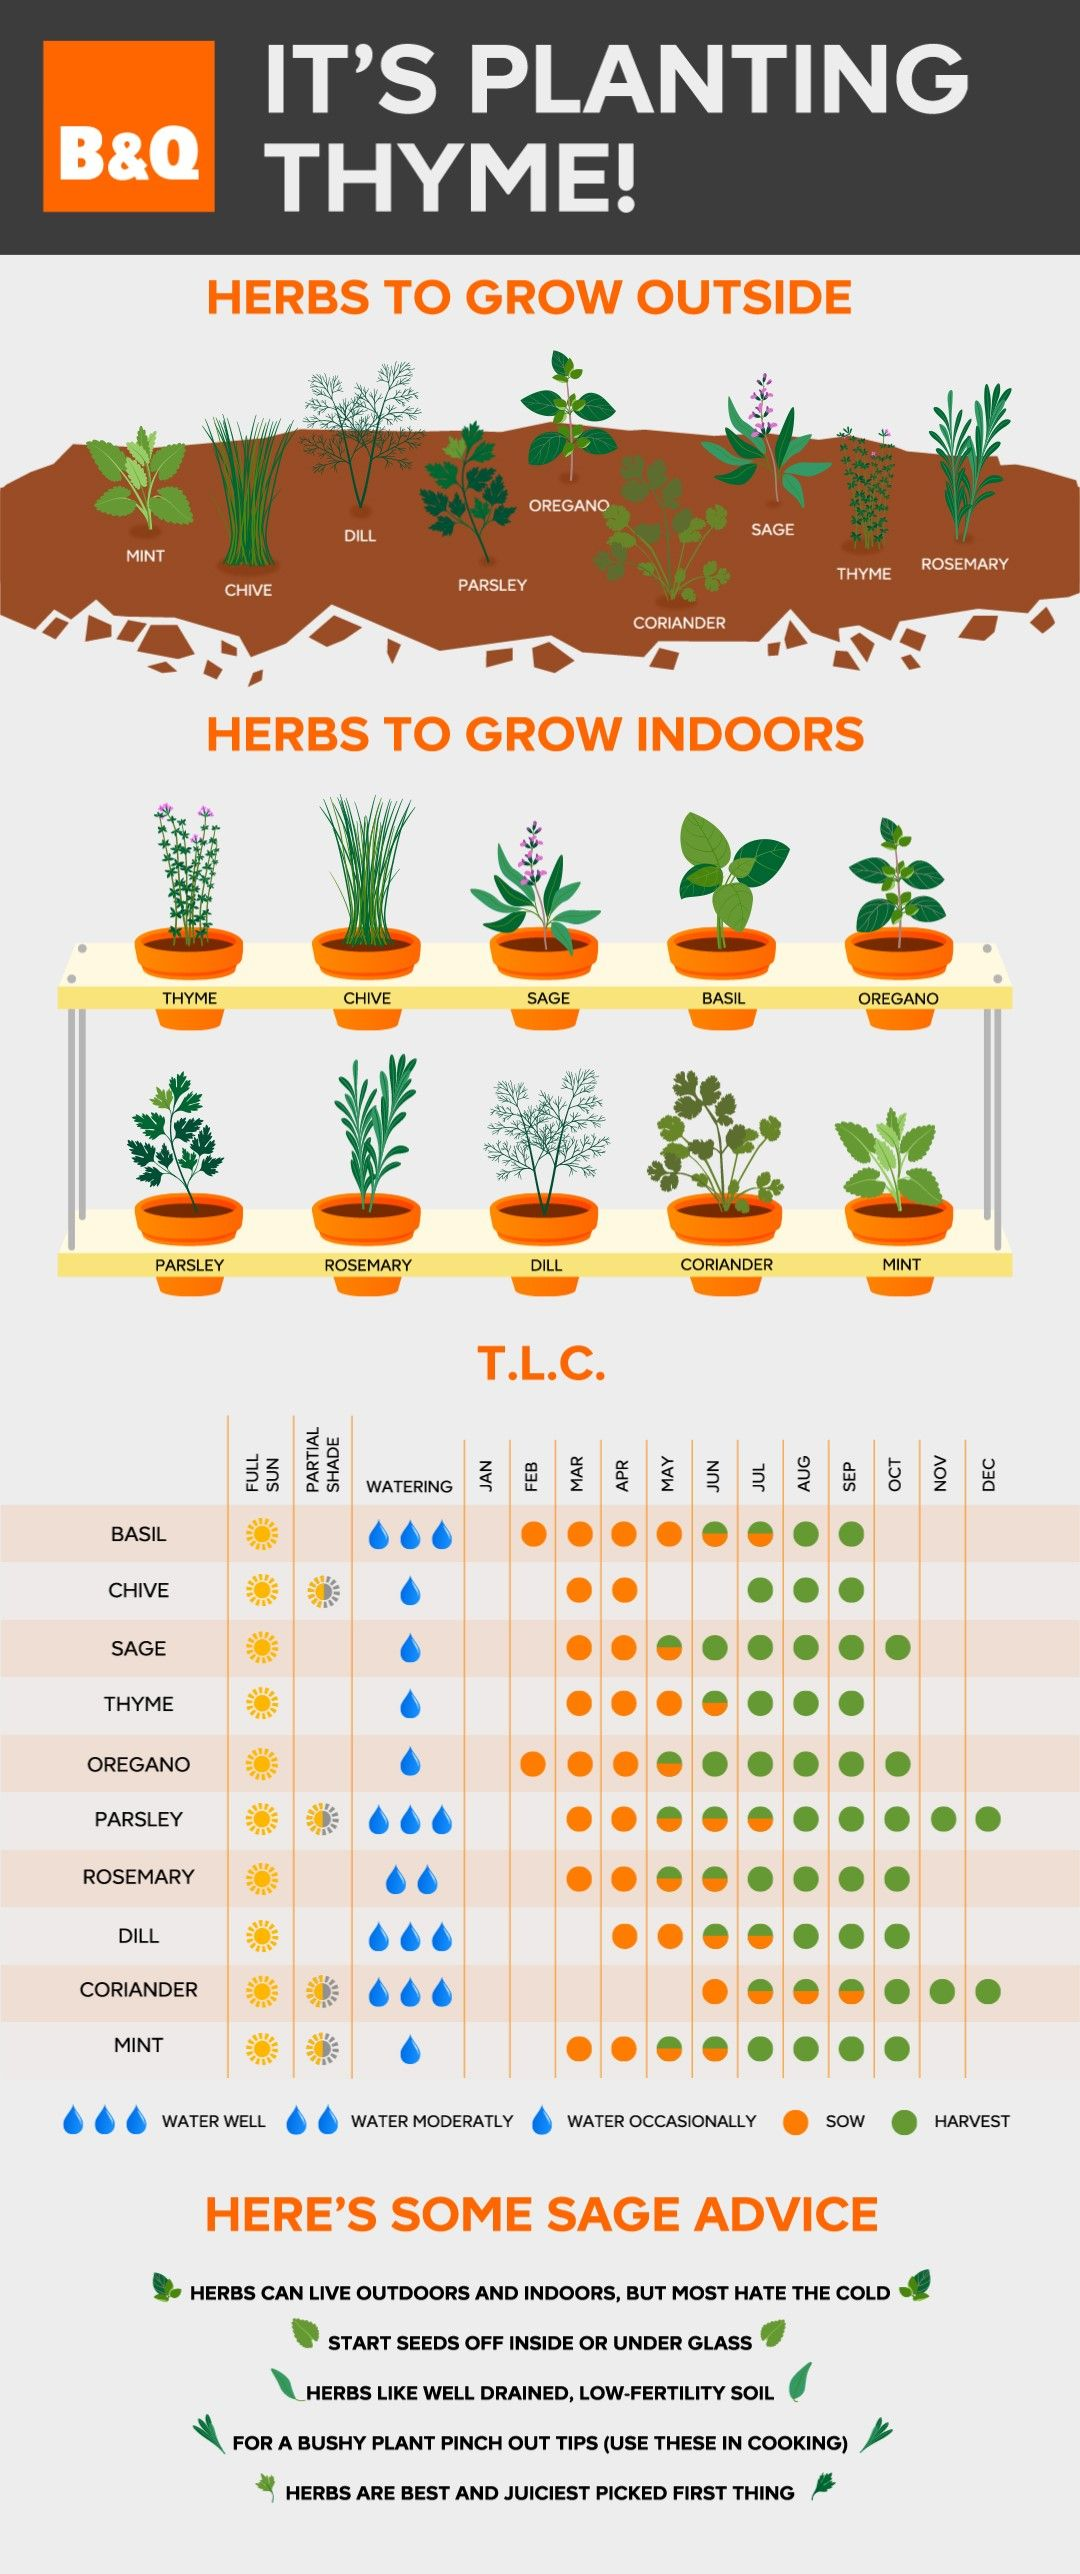 Sage advice in herb care: plan your grown-at-home salads in advance with this handy herb chart that shows you when your plants will flourish. #balconygarden